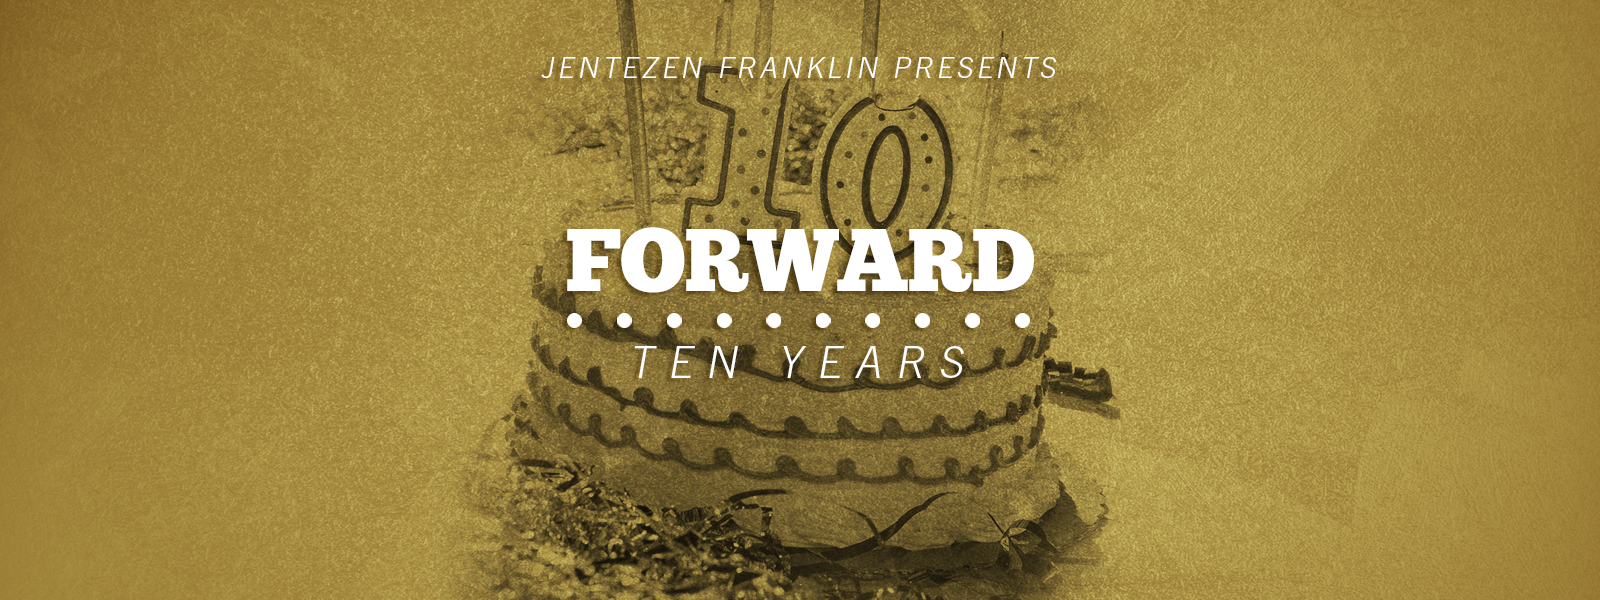 JFM-Hp-Forward-Ten-Years